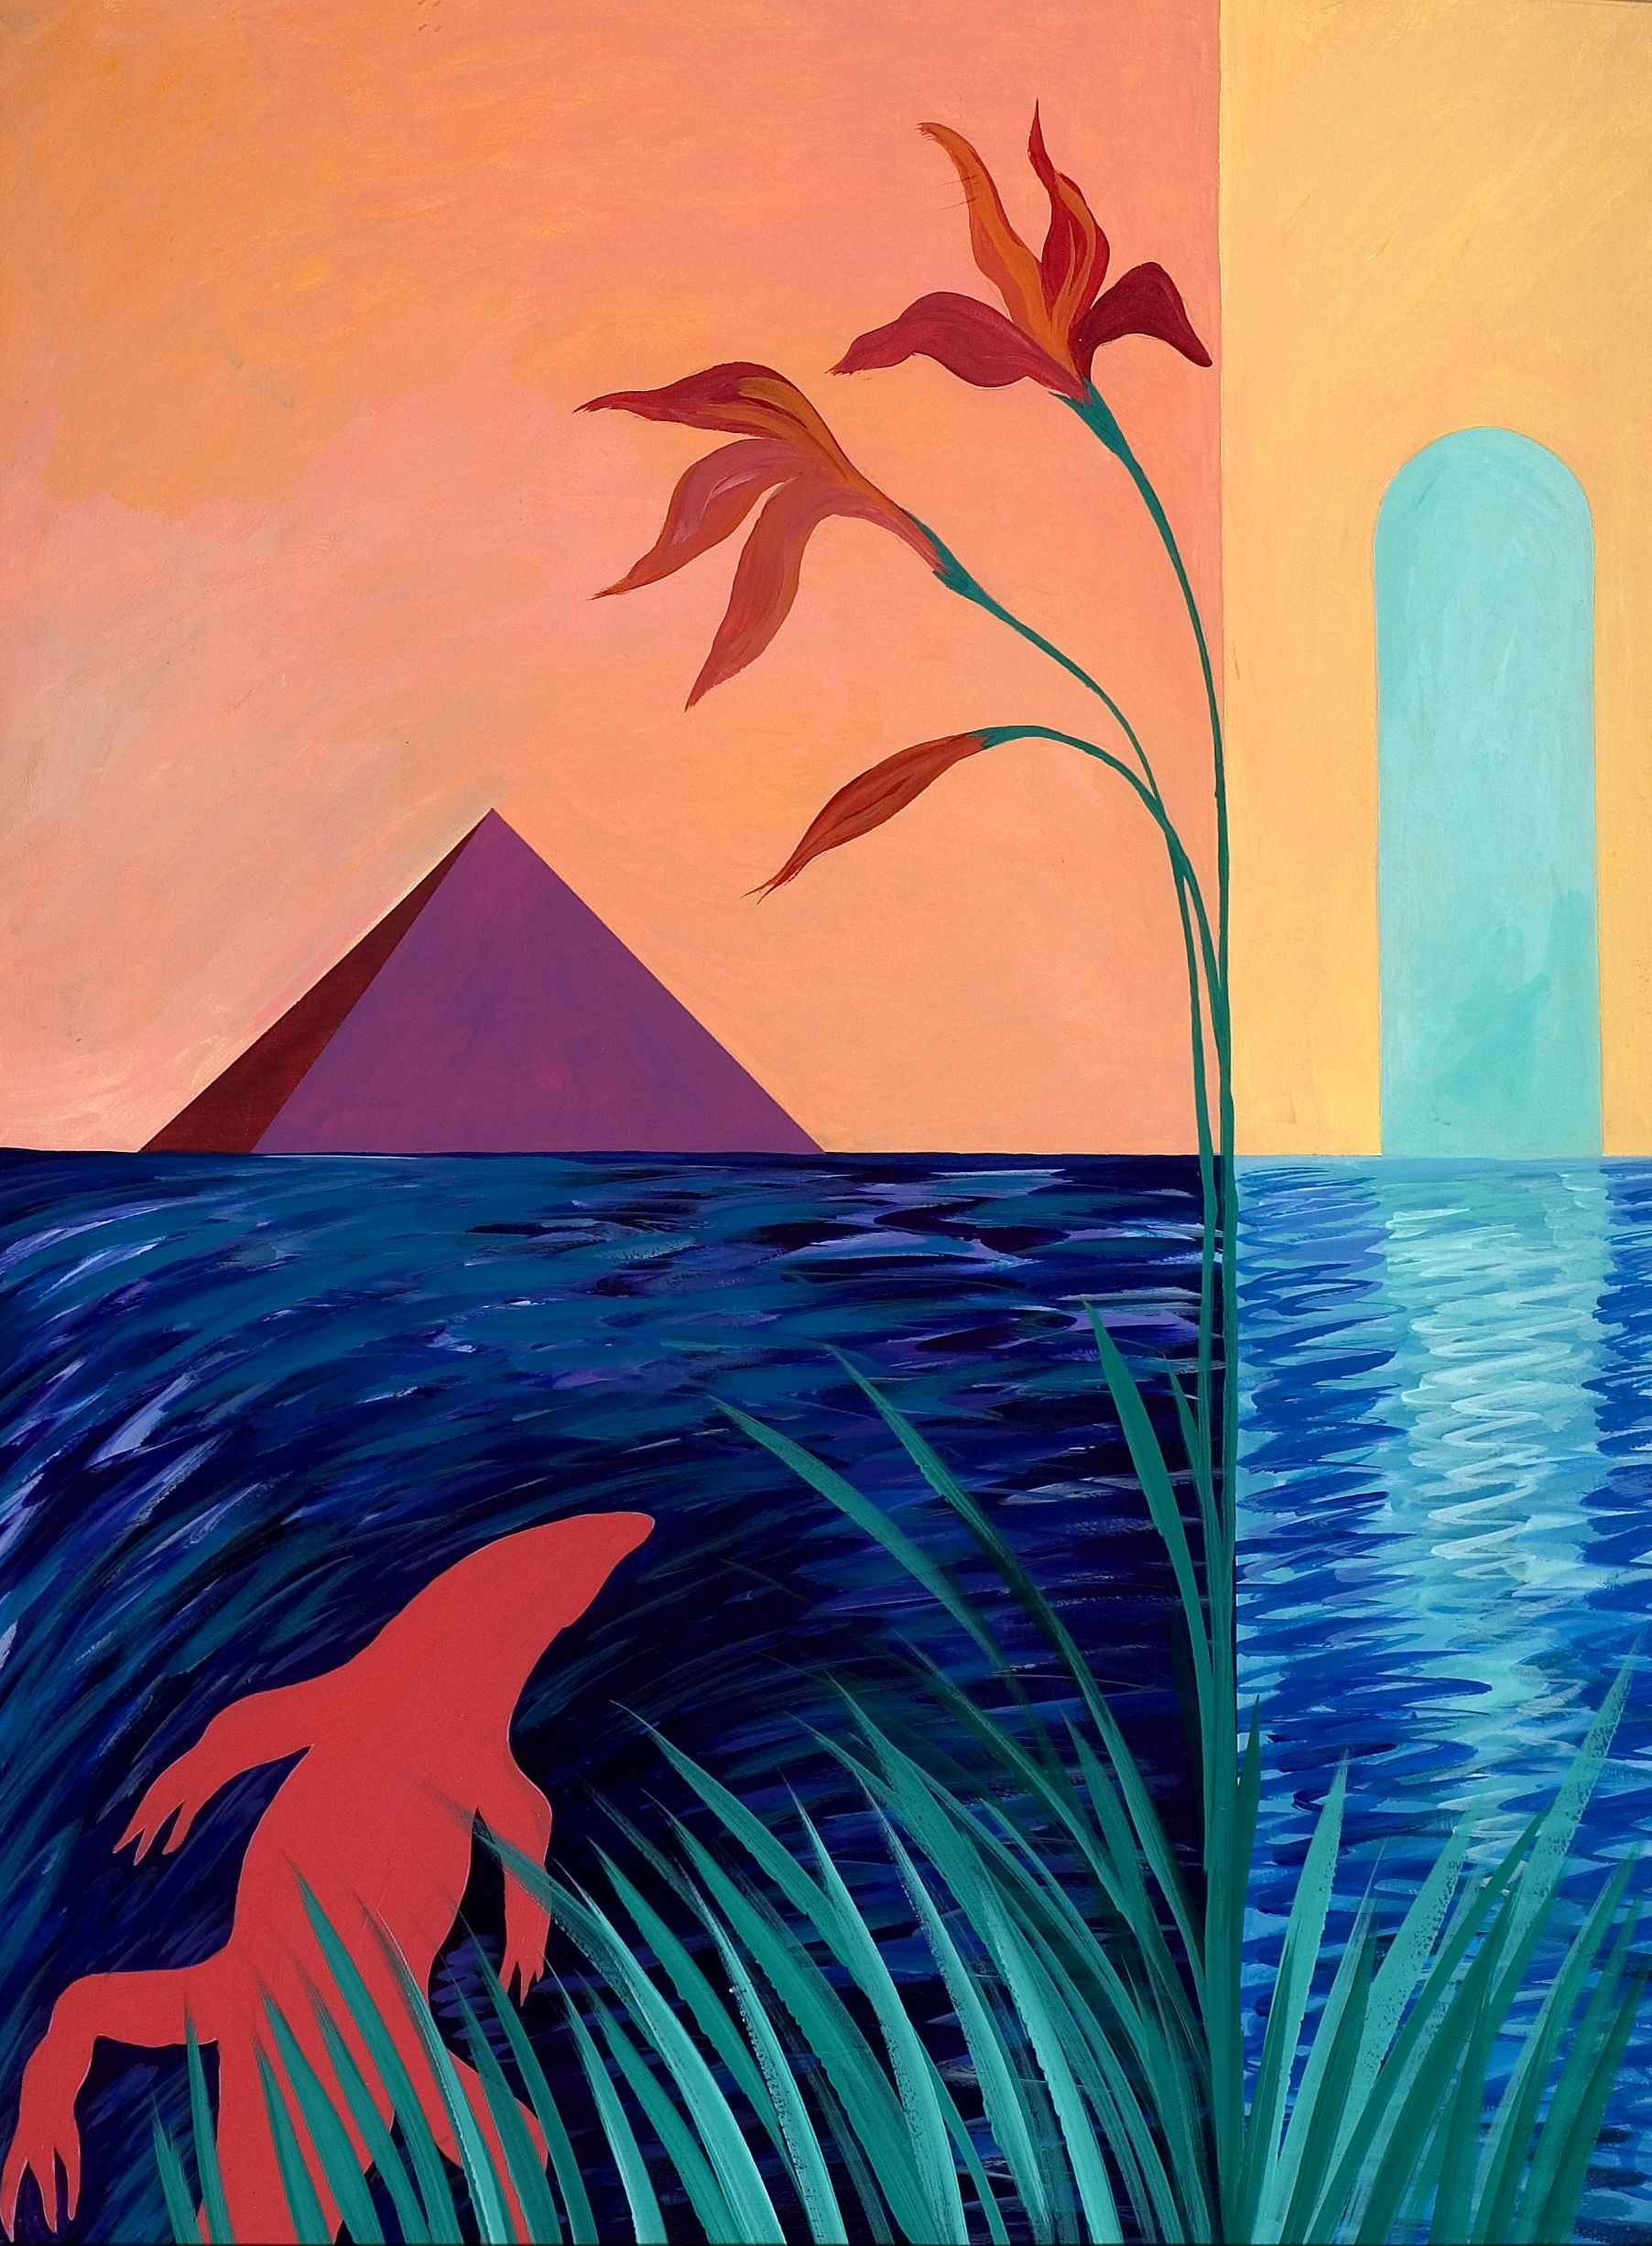 """The work is part of a series of fifteen pieces of the same size. It is specifically the third piece in a triptych numbered IV."" [Paradise mystery IVc], Selections from Georgia's State Art Collection, presented in the Digital Library of Georgia. Georgia Council for the Arts"